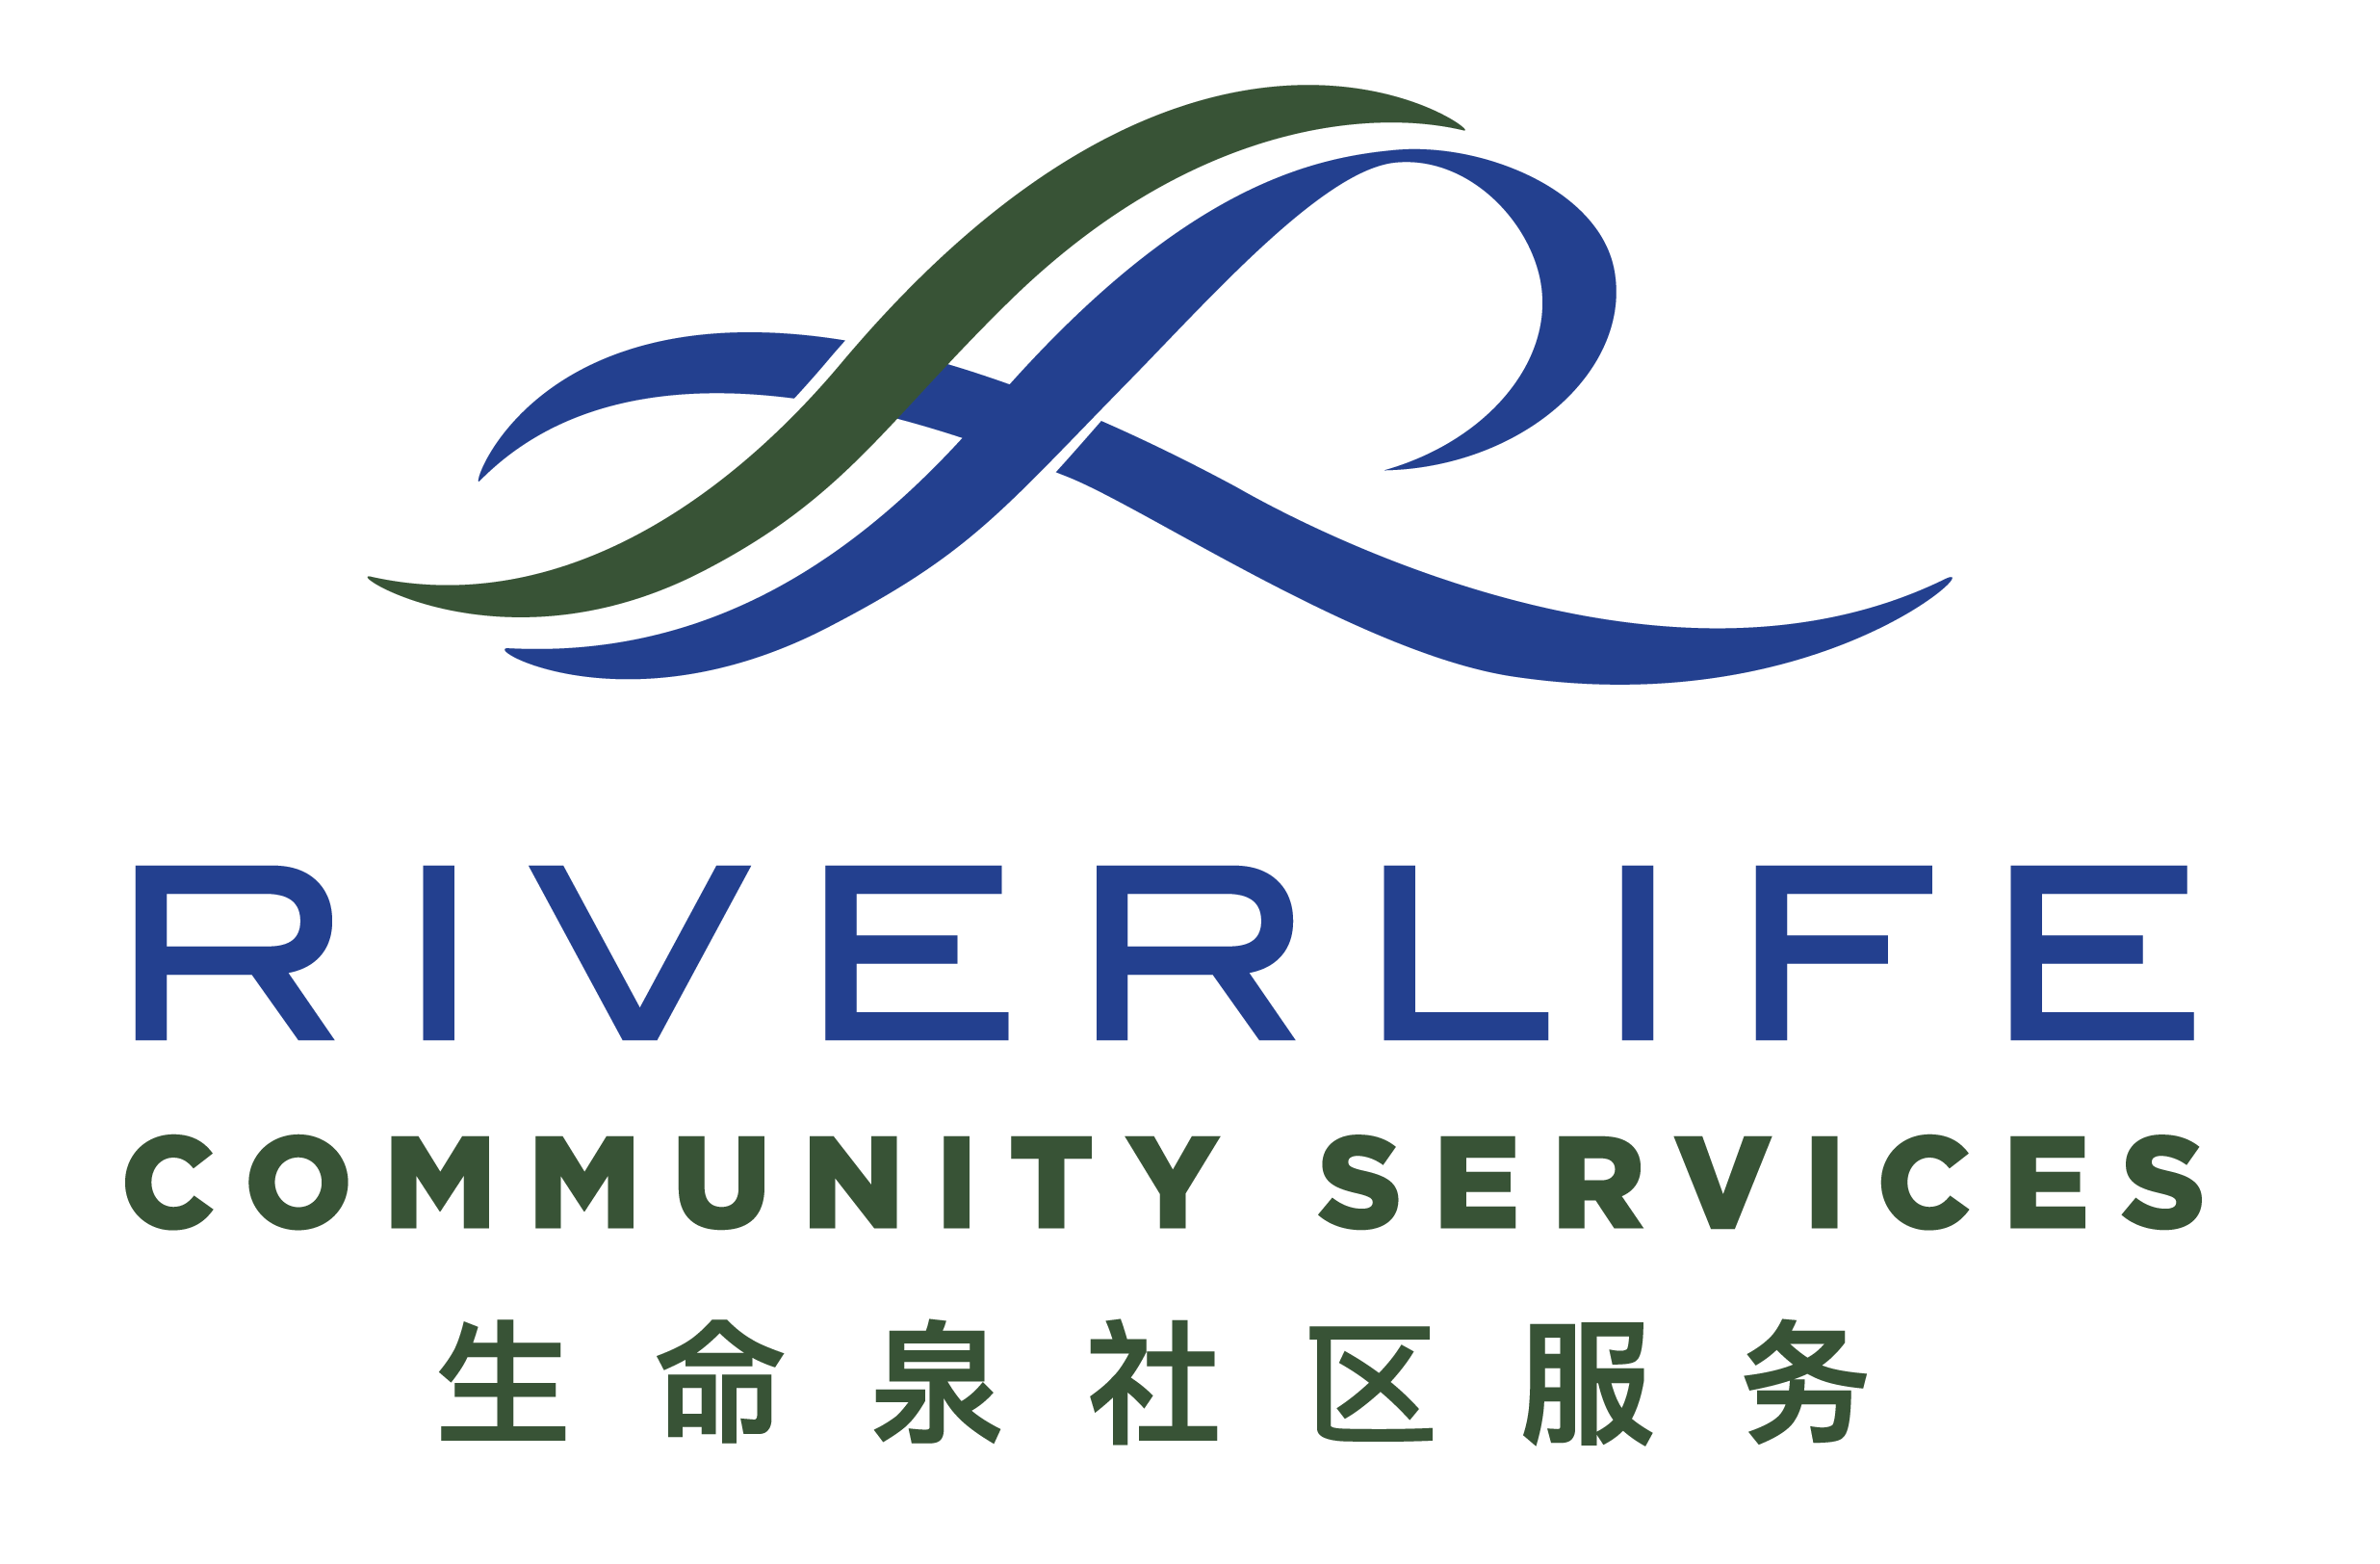 Riverlife Community Services Ltd